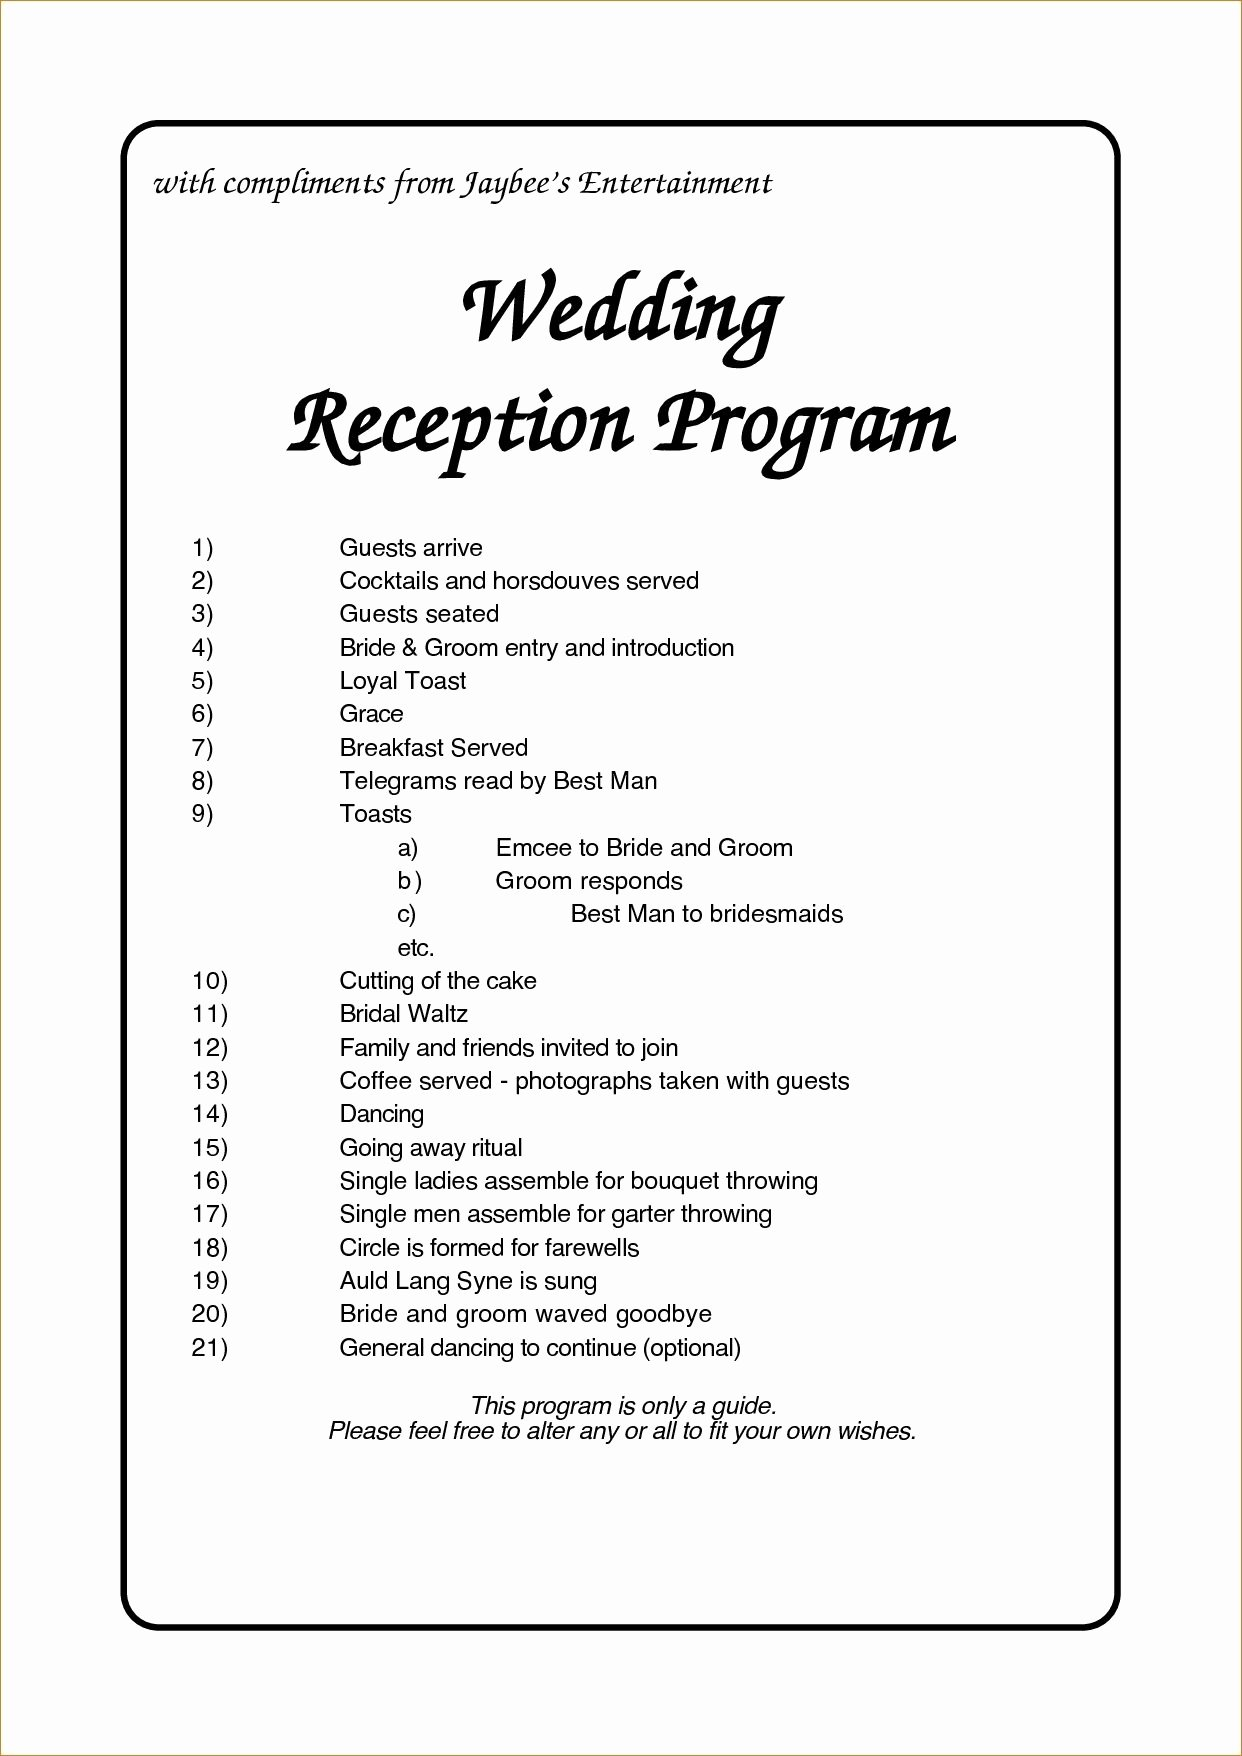 Wedding Reception Programme Template Awesome Wedding Reception Program Template Business Plan for Free